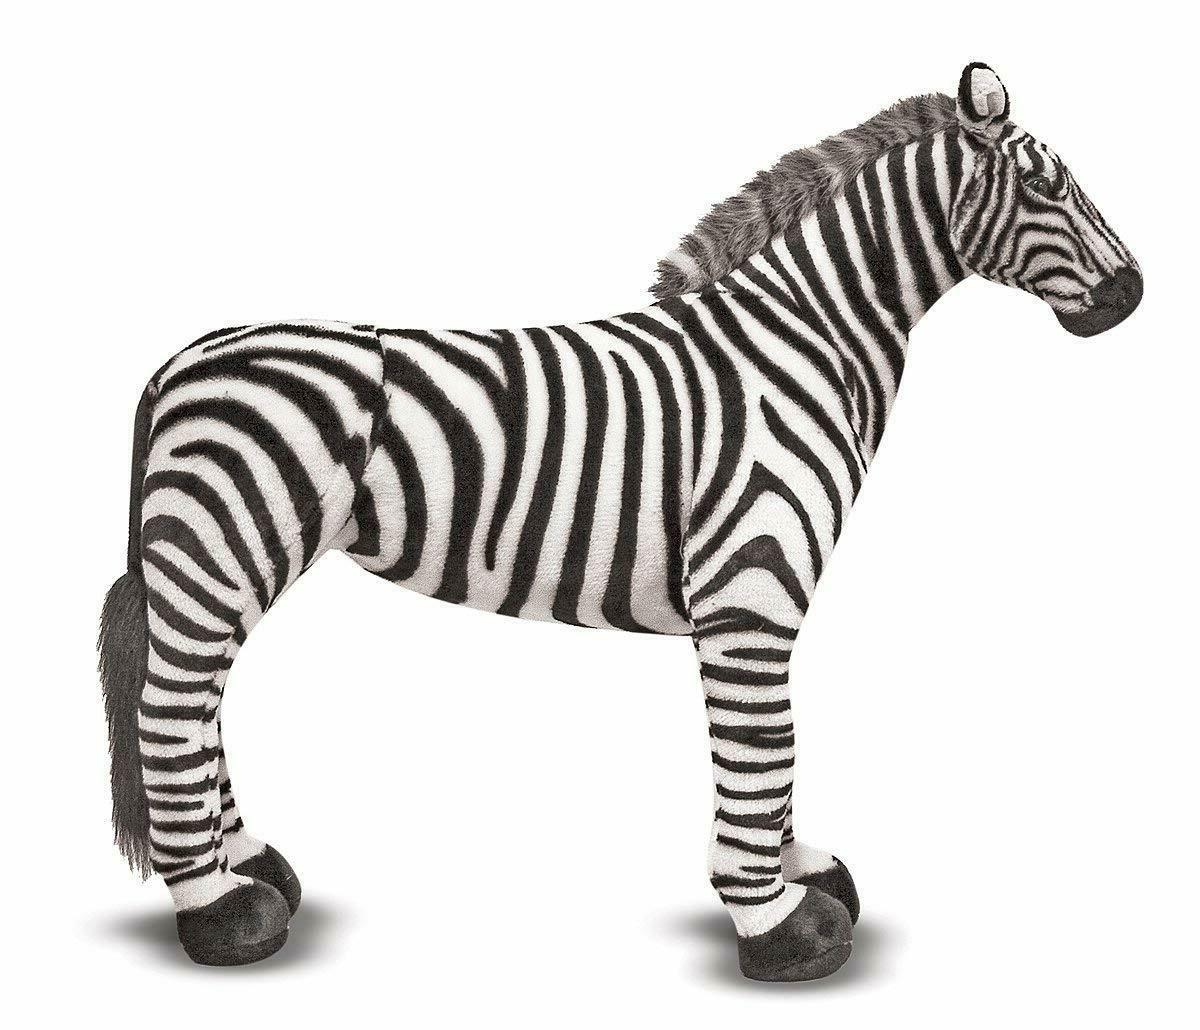 NWT Giant Zebra Lifelike Stuffed Animal